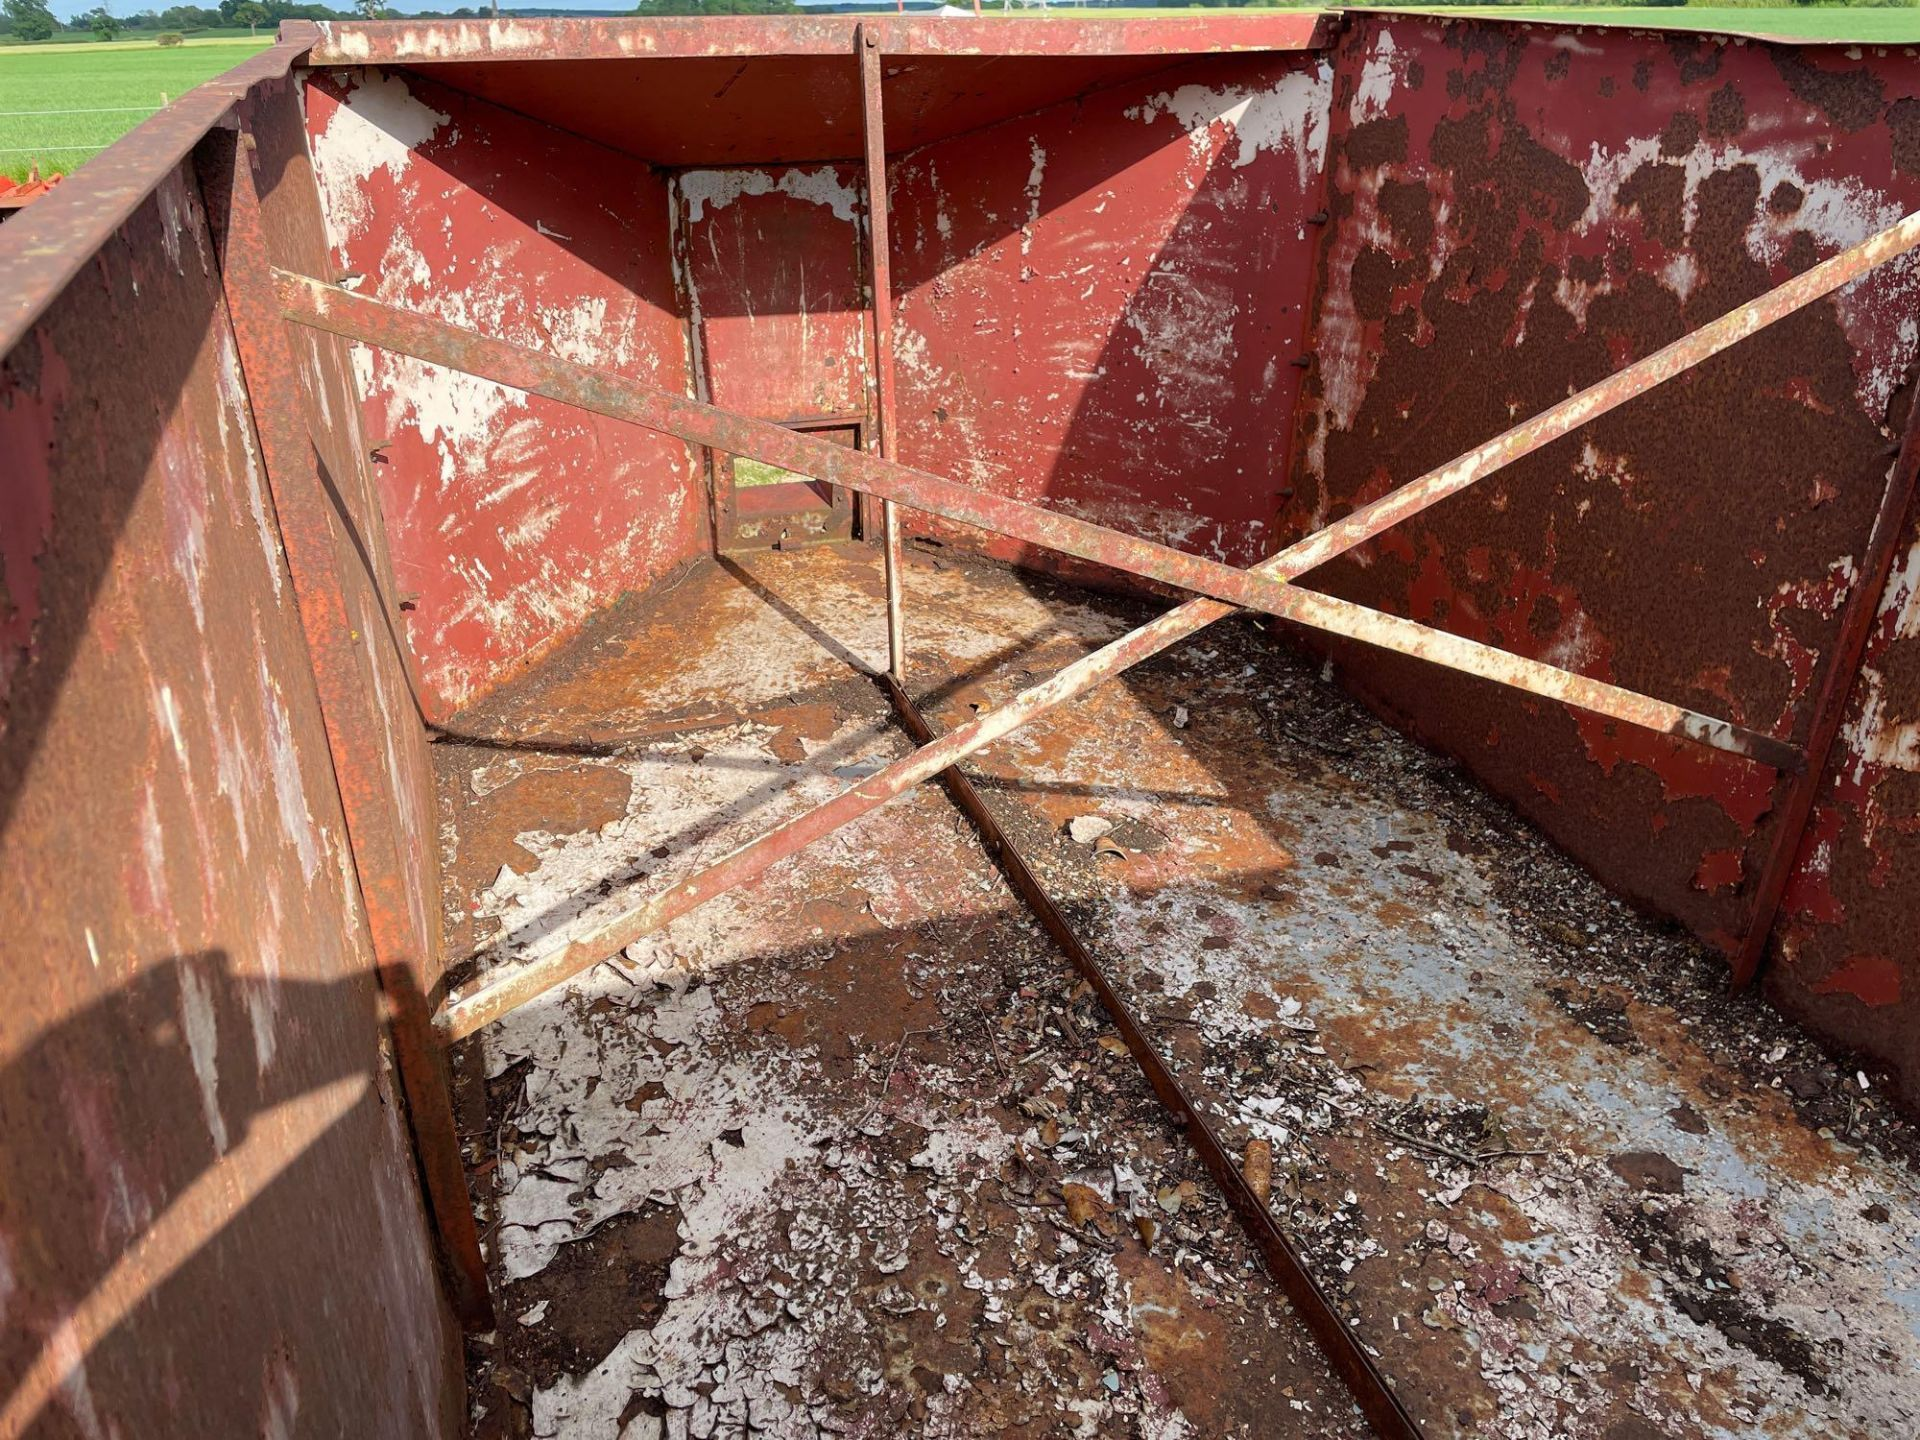 10ft single axle hydraulic tipping trailer, wooden floor with steel tank and grain chute - Image 5 of 6